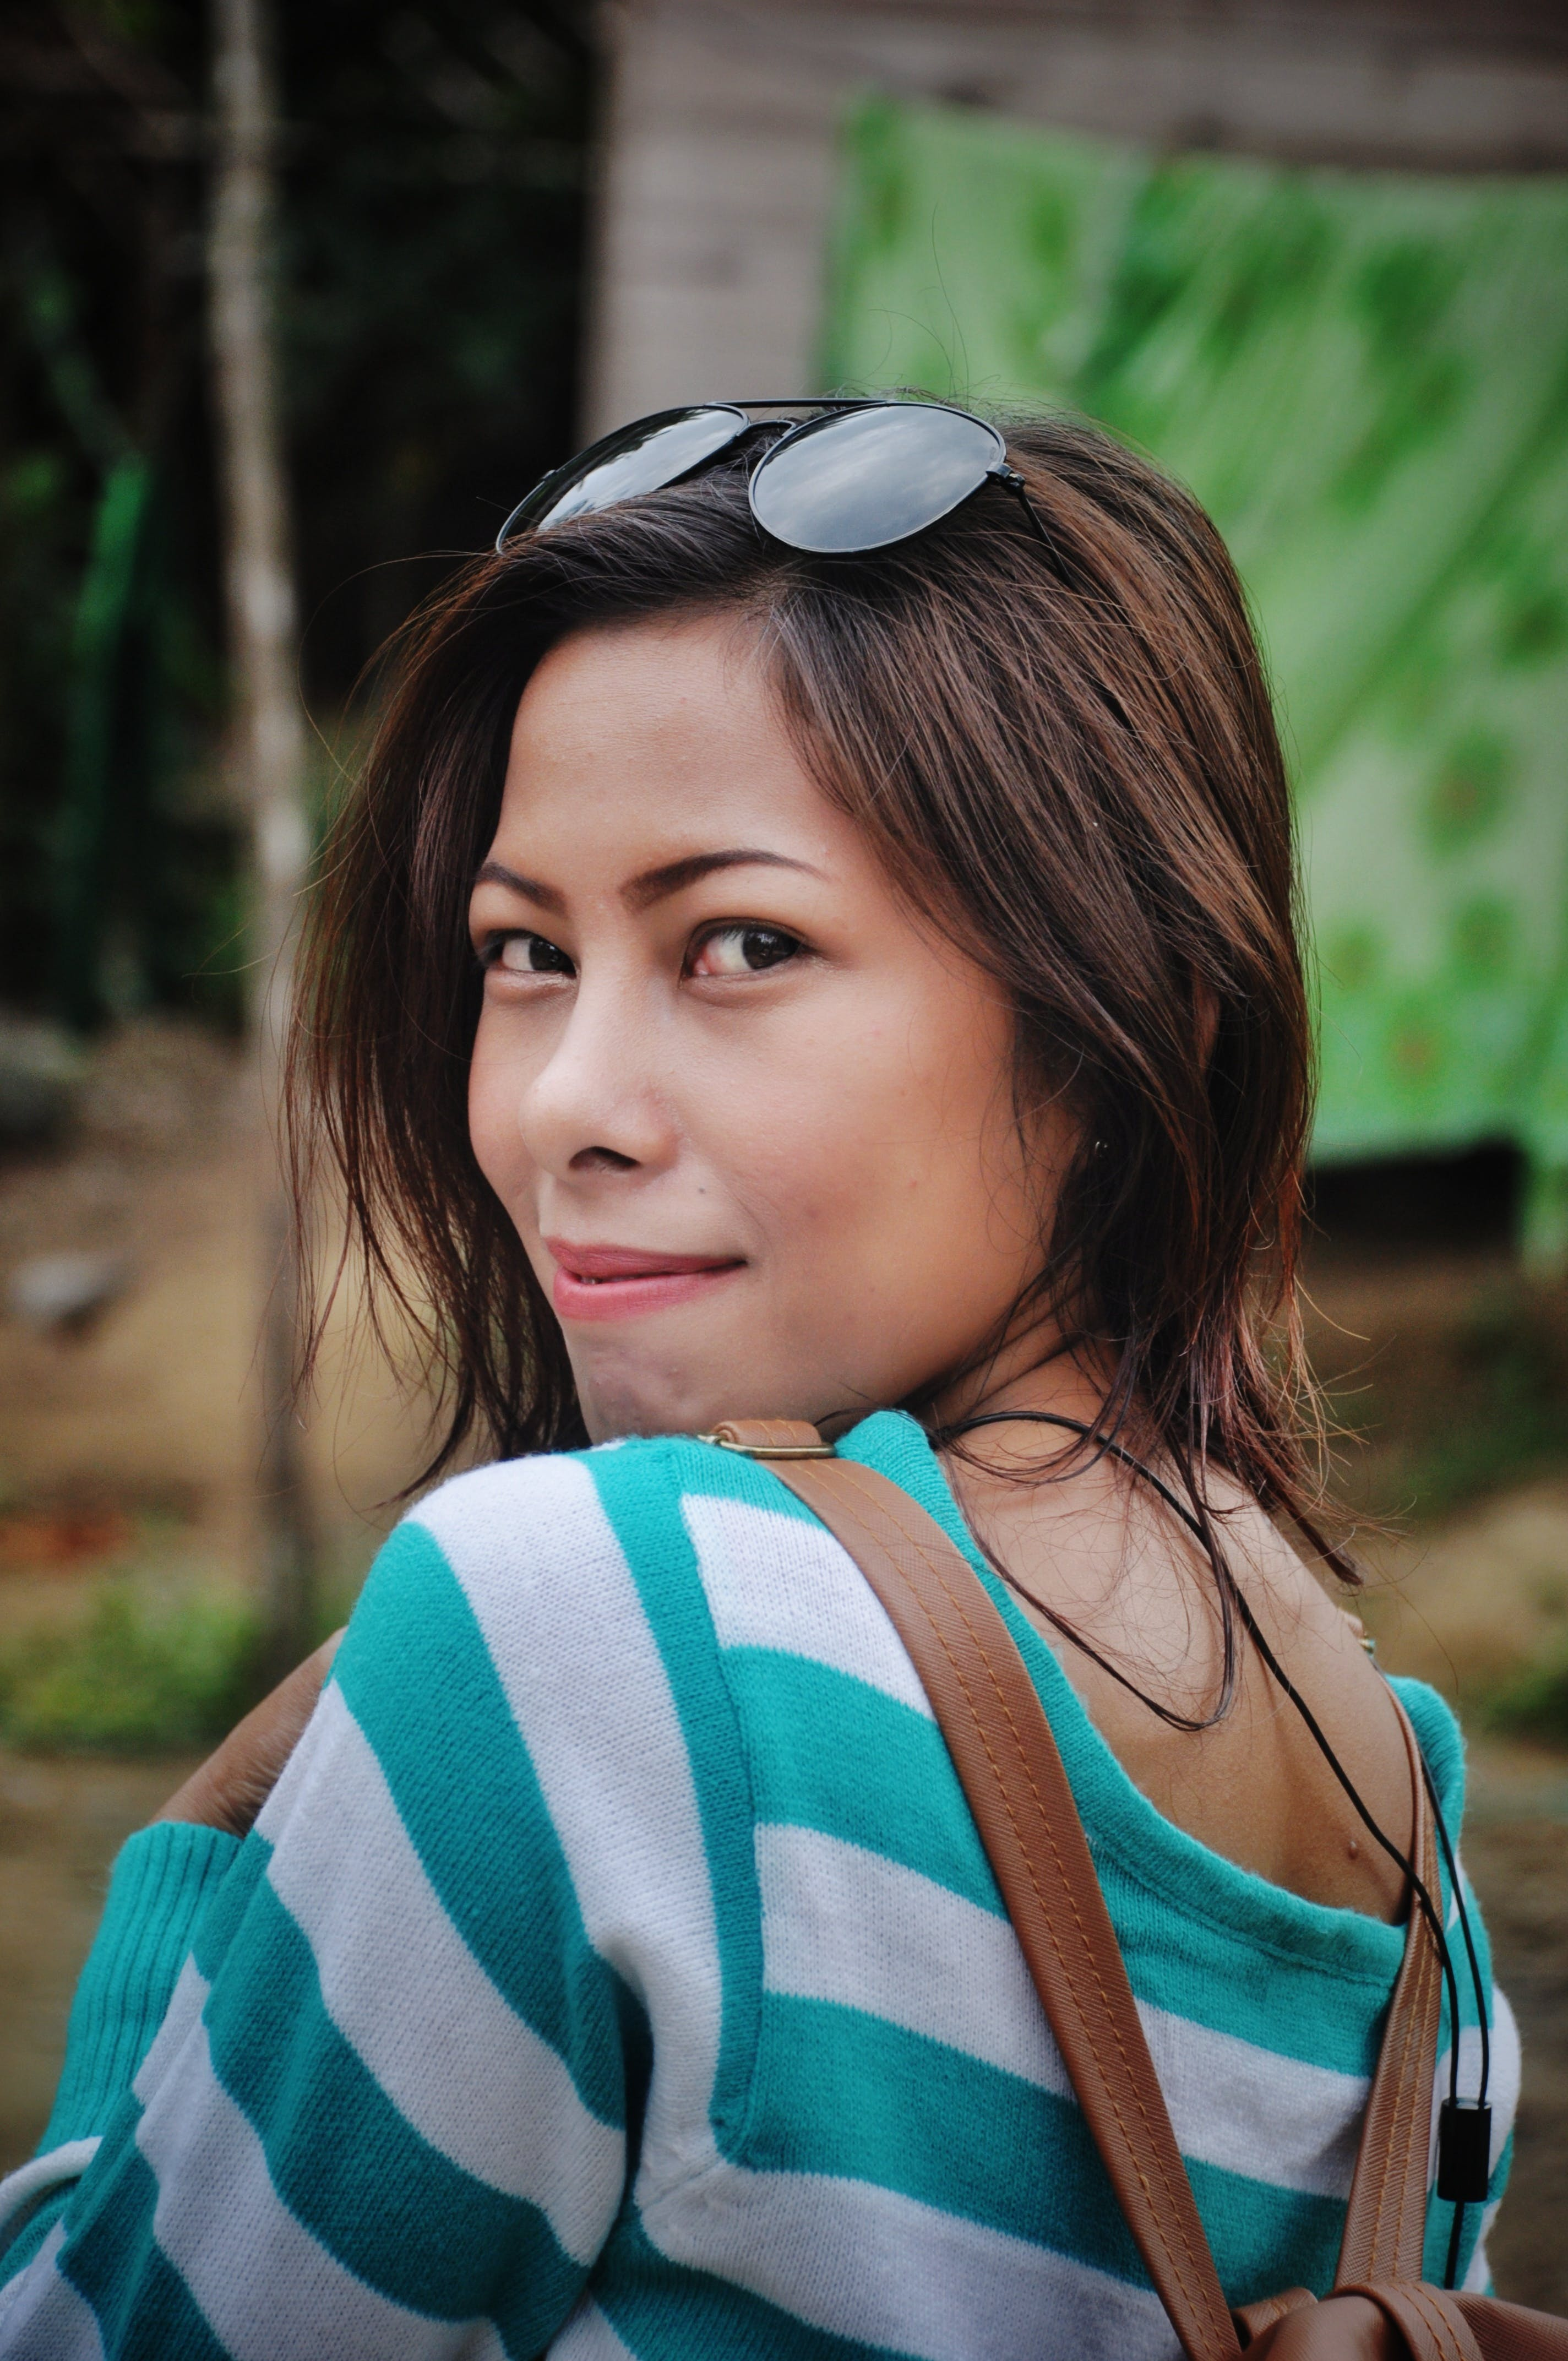 Shallow Depth of Field Photography of Woman in White and Teal Striped Long-sleeved Shirt With Sunglasses